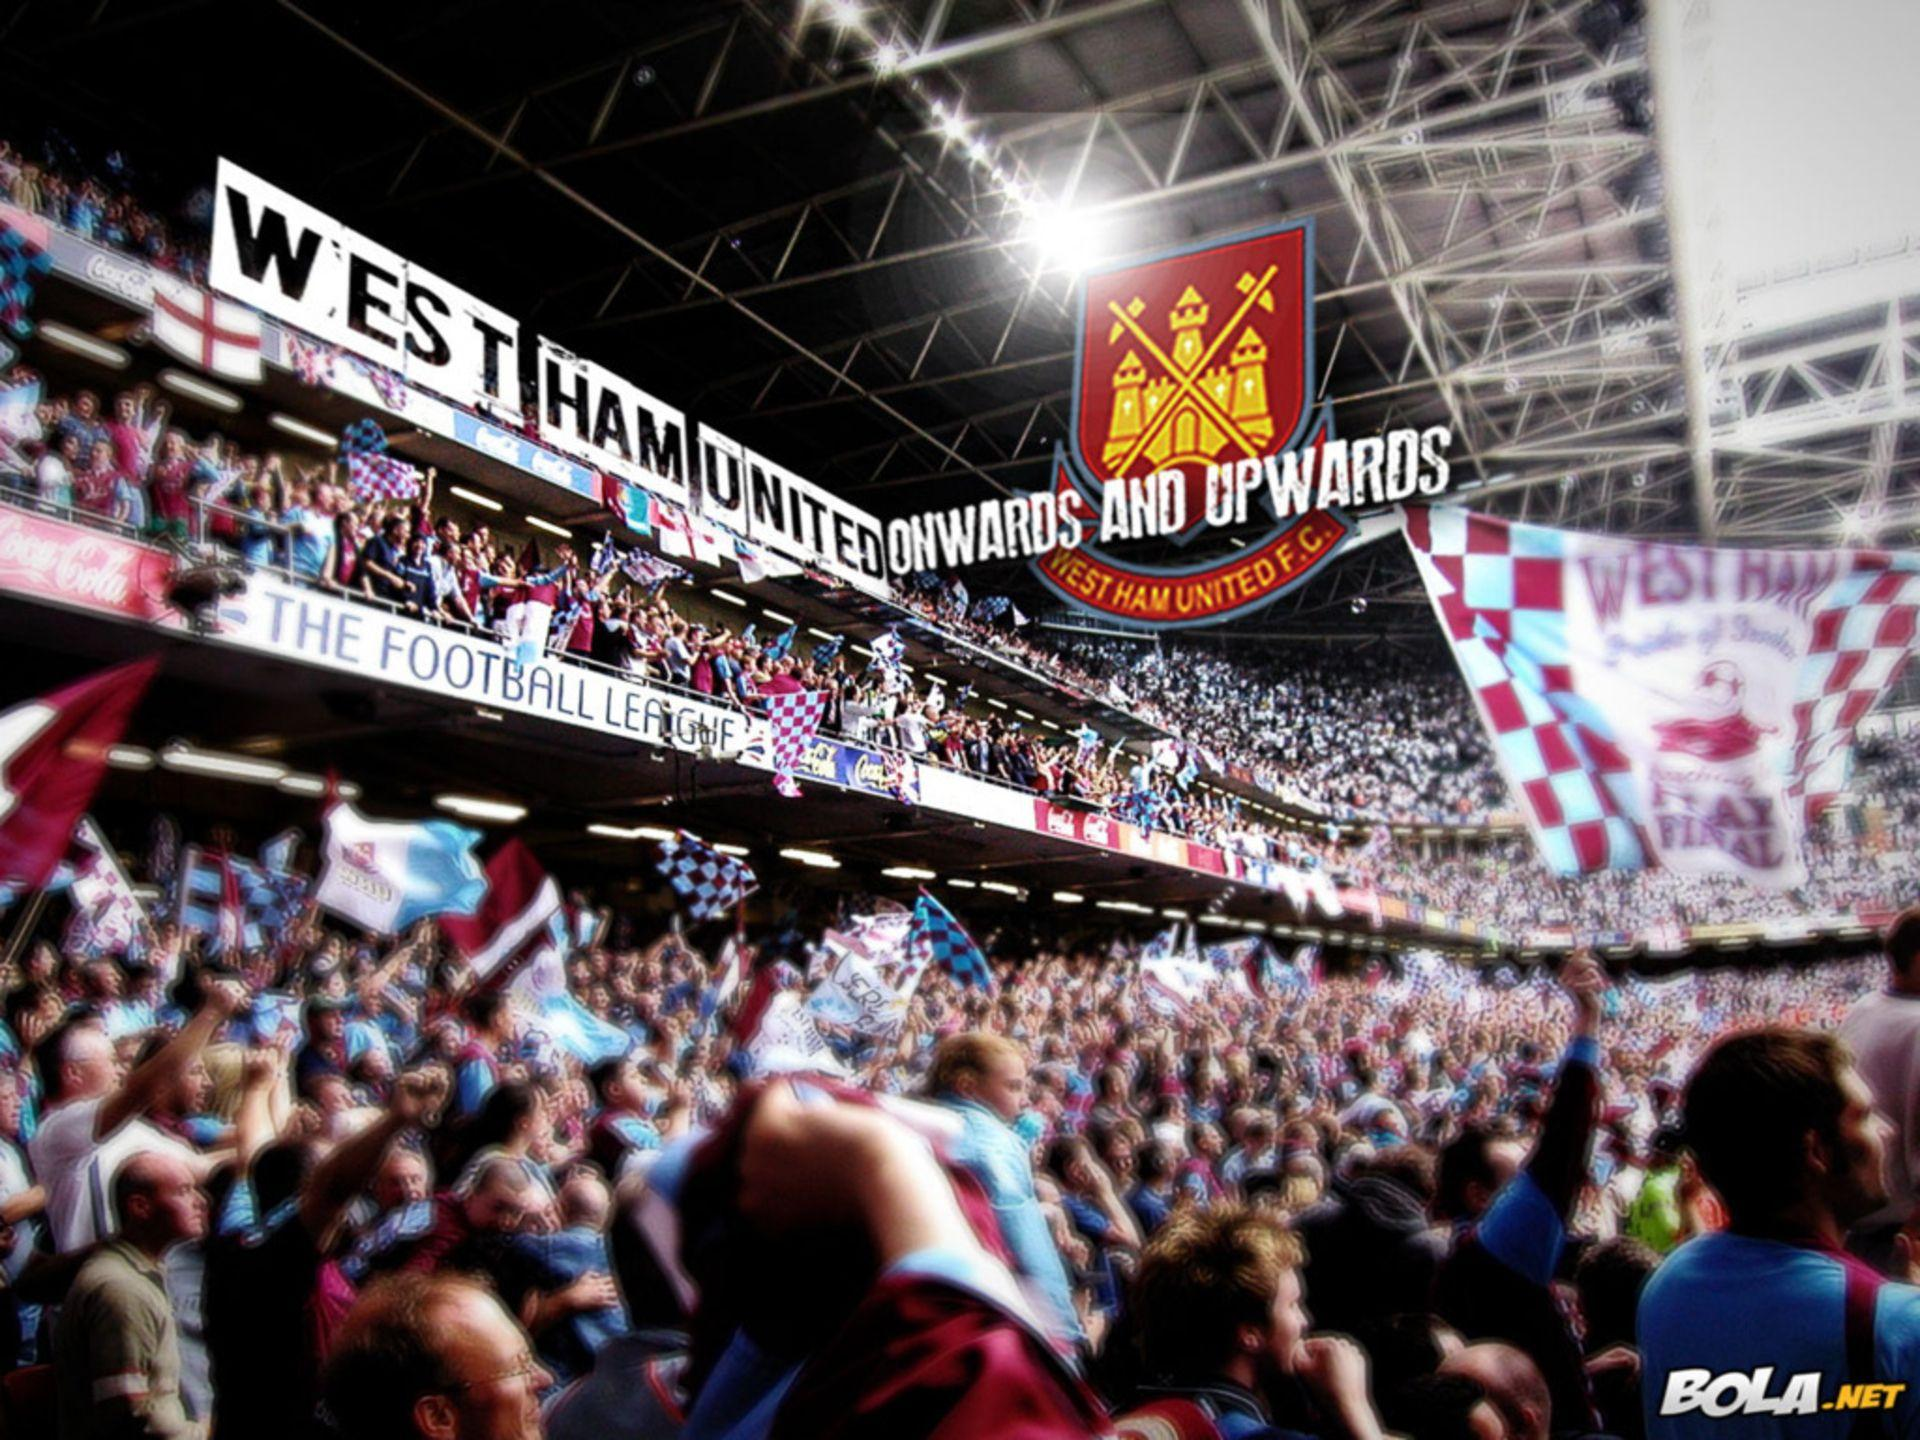 Best West Ham united wallpapers and image